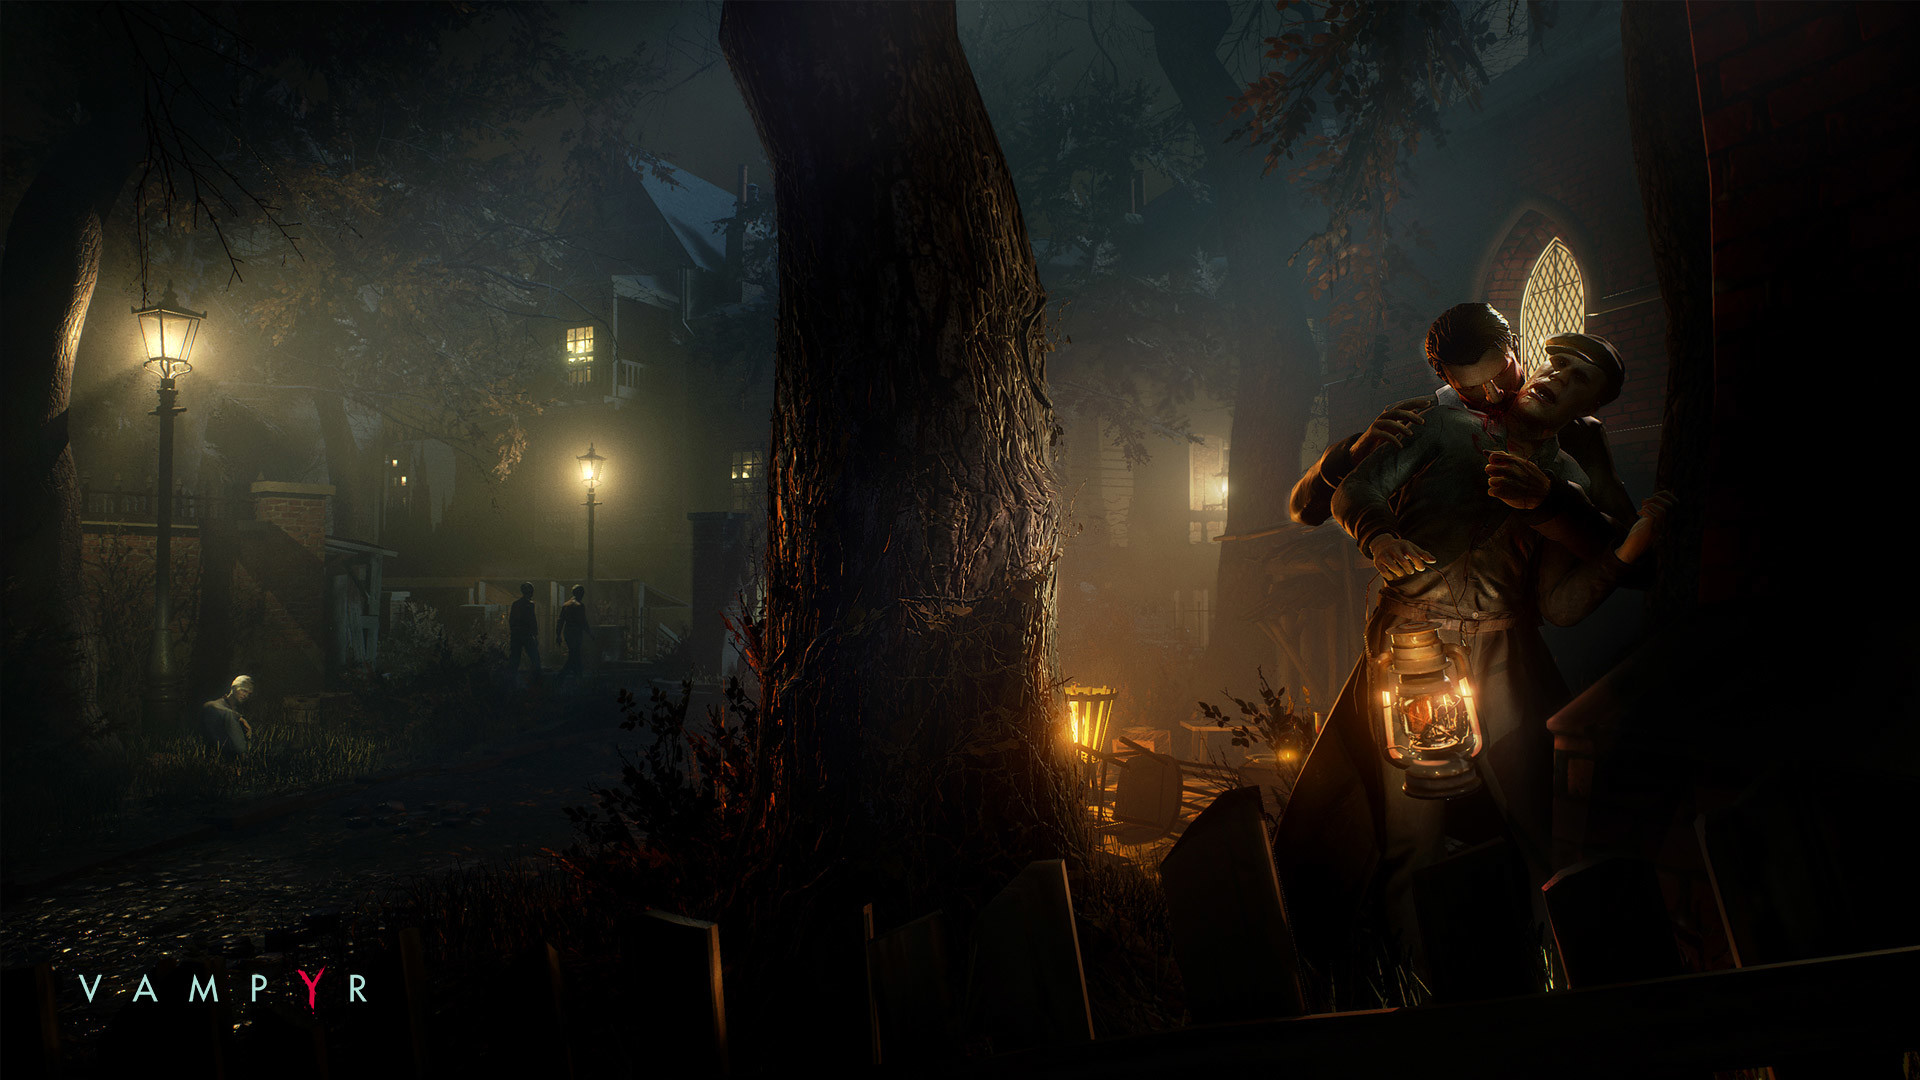 Vampyr, the RPG about turn-of-the-century vampires, has been delayed to  2018   PC Gamer